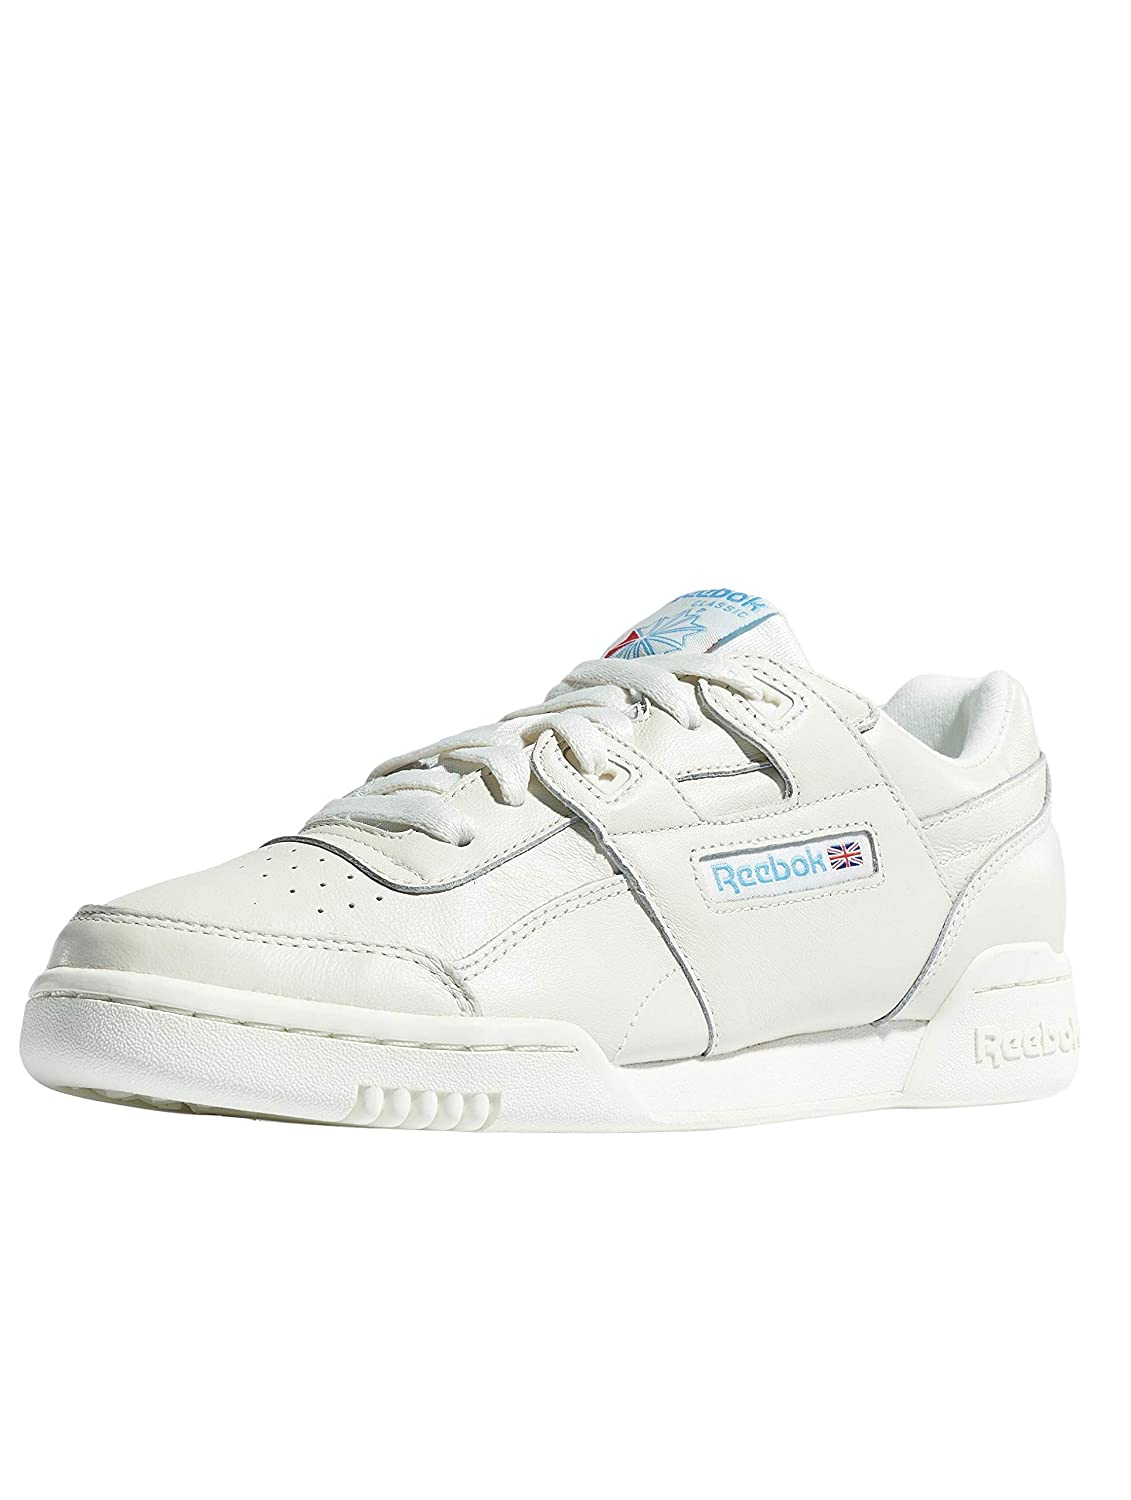 Chalk Blau Reebok Damen Workout Lo Plus Fitnessschuhe